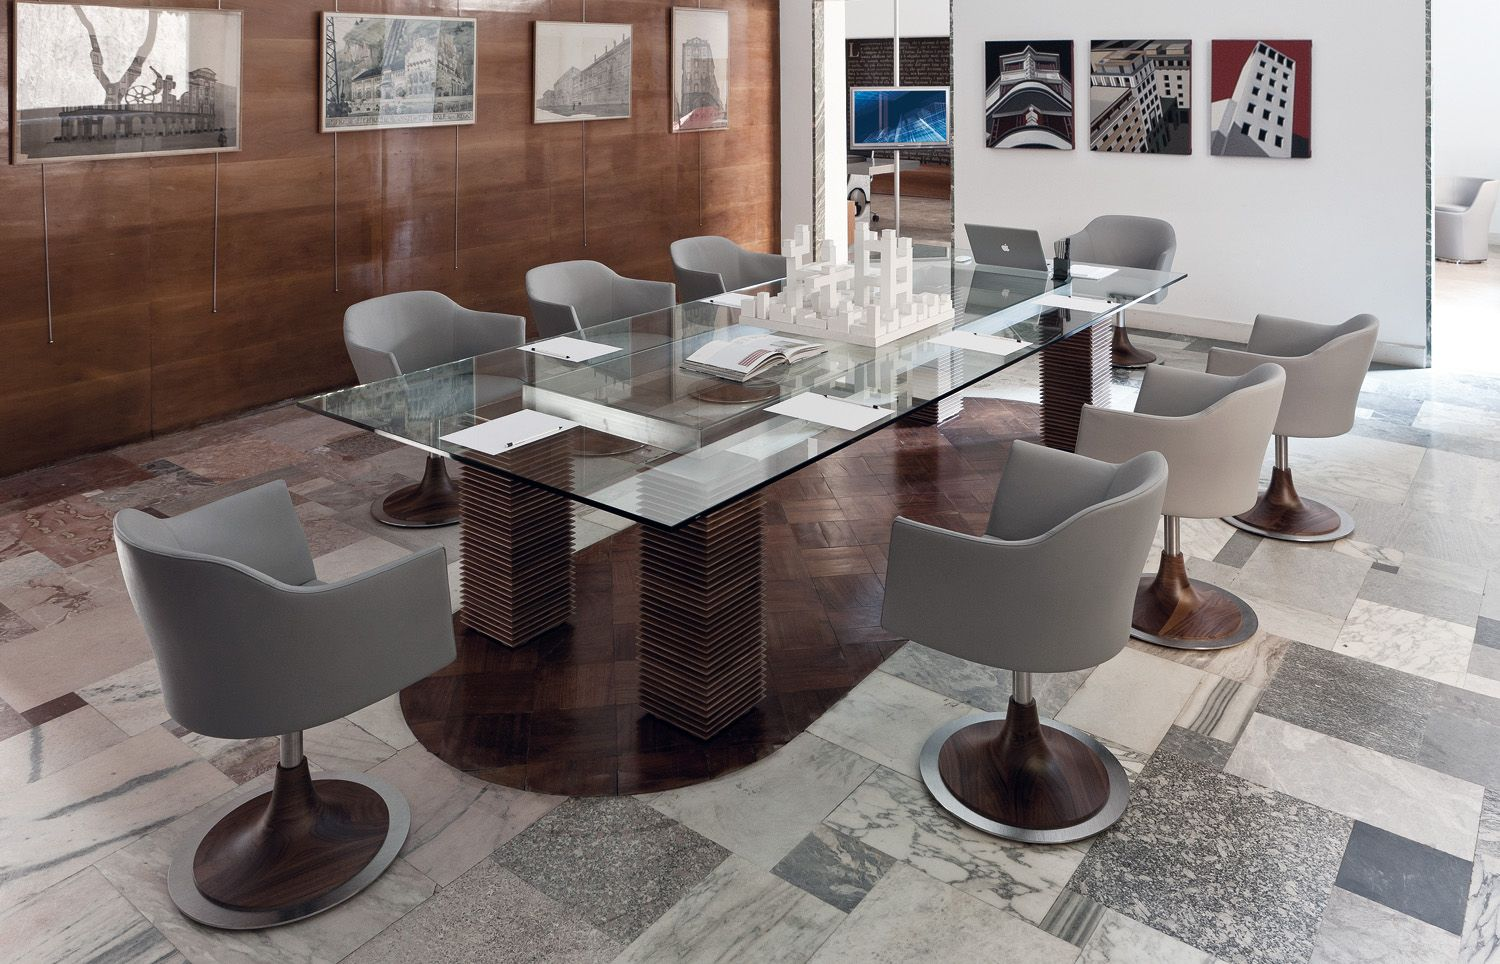 Porada burton dining table with kelly chairs porada for Porada arredi srl